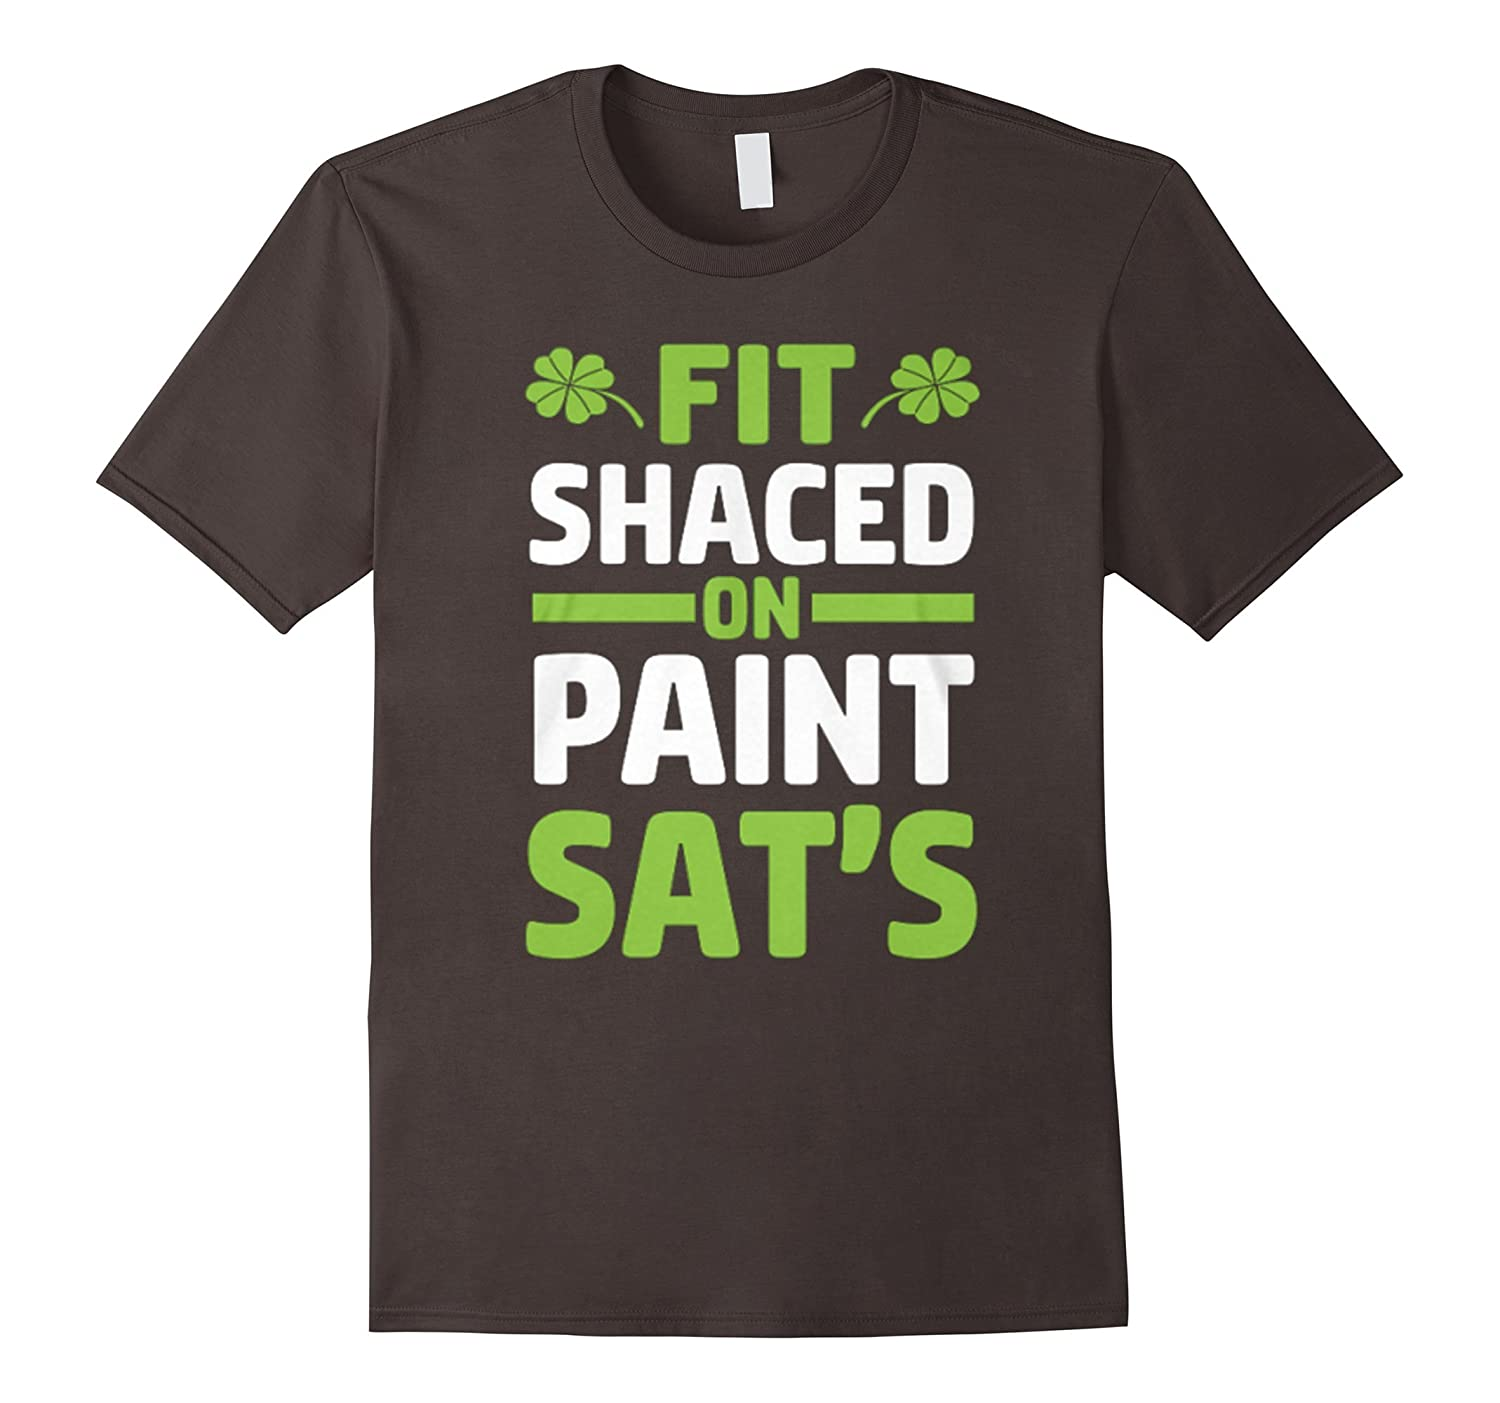 Fit Shaced On Paint Sats Day Shirt St Patricks Day-TD